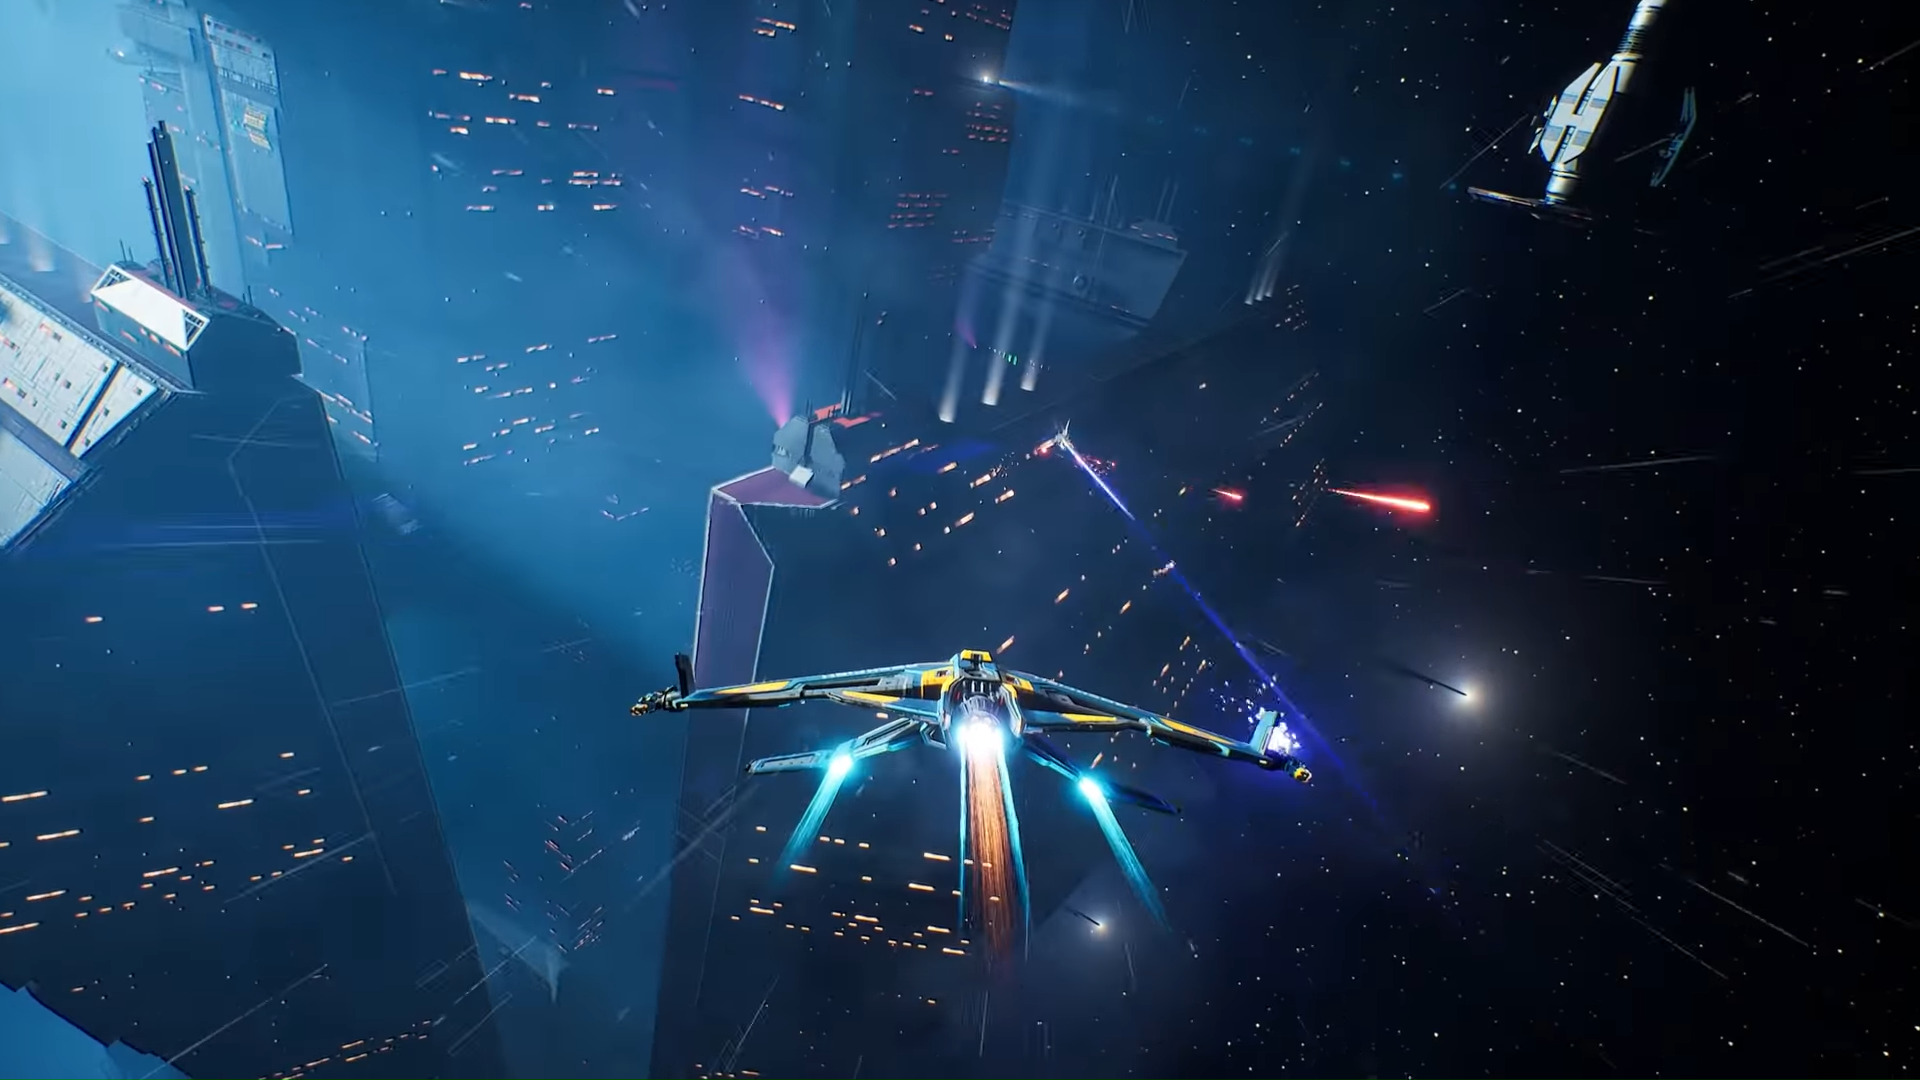 Everspace 2 Is A Fast-Paced Space Shooter And Simulator Coming Soon To Steam Early Access